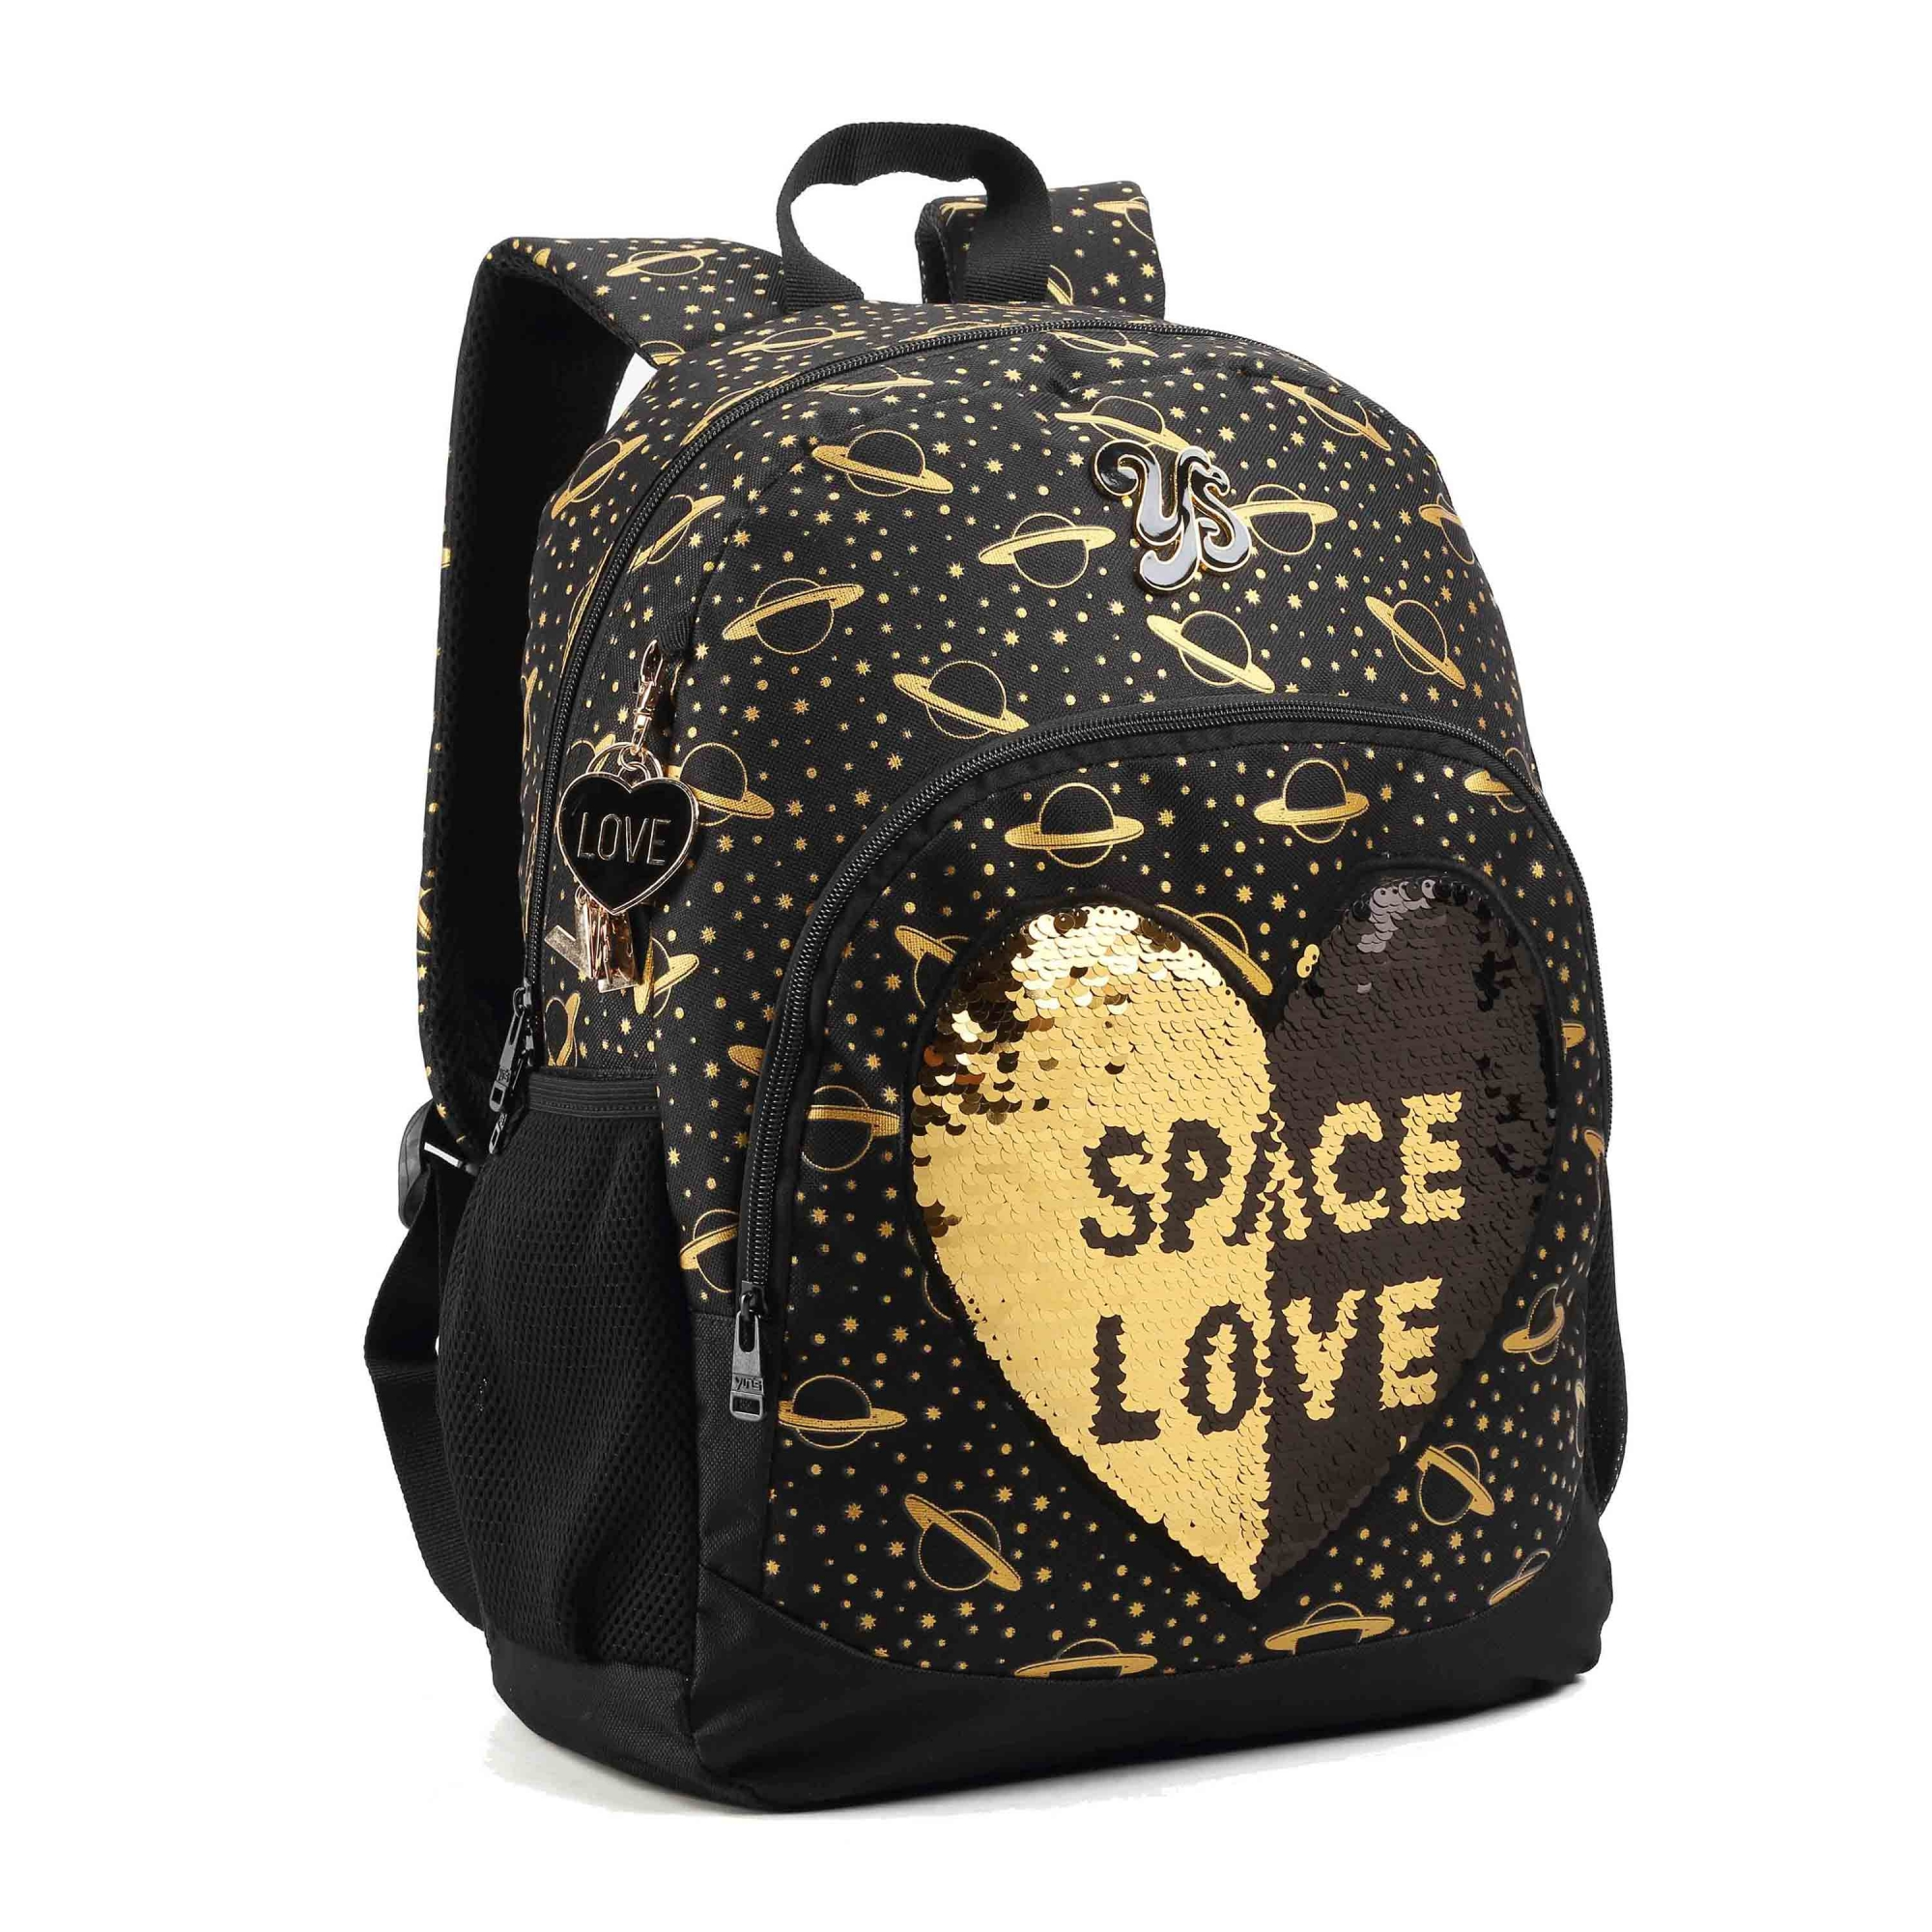 "MOCHILA 16"" SPACE LOVE DOURADA - SEANITE"